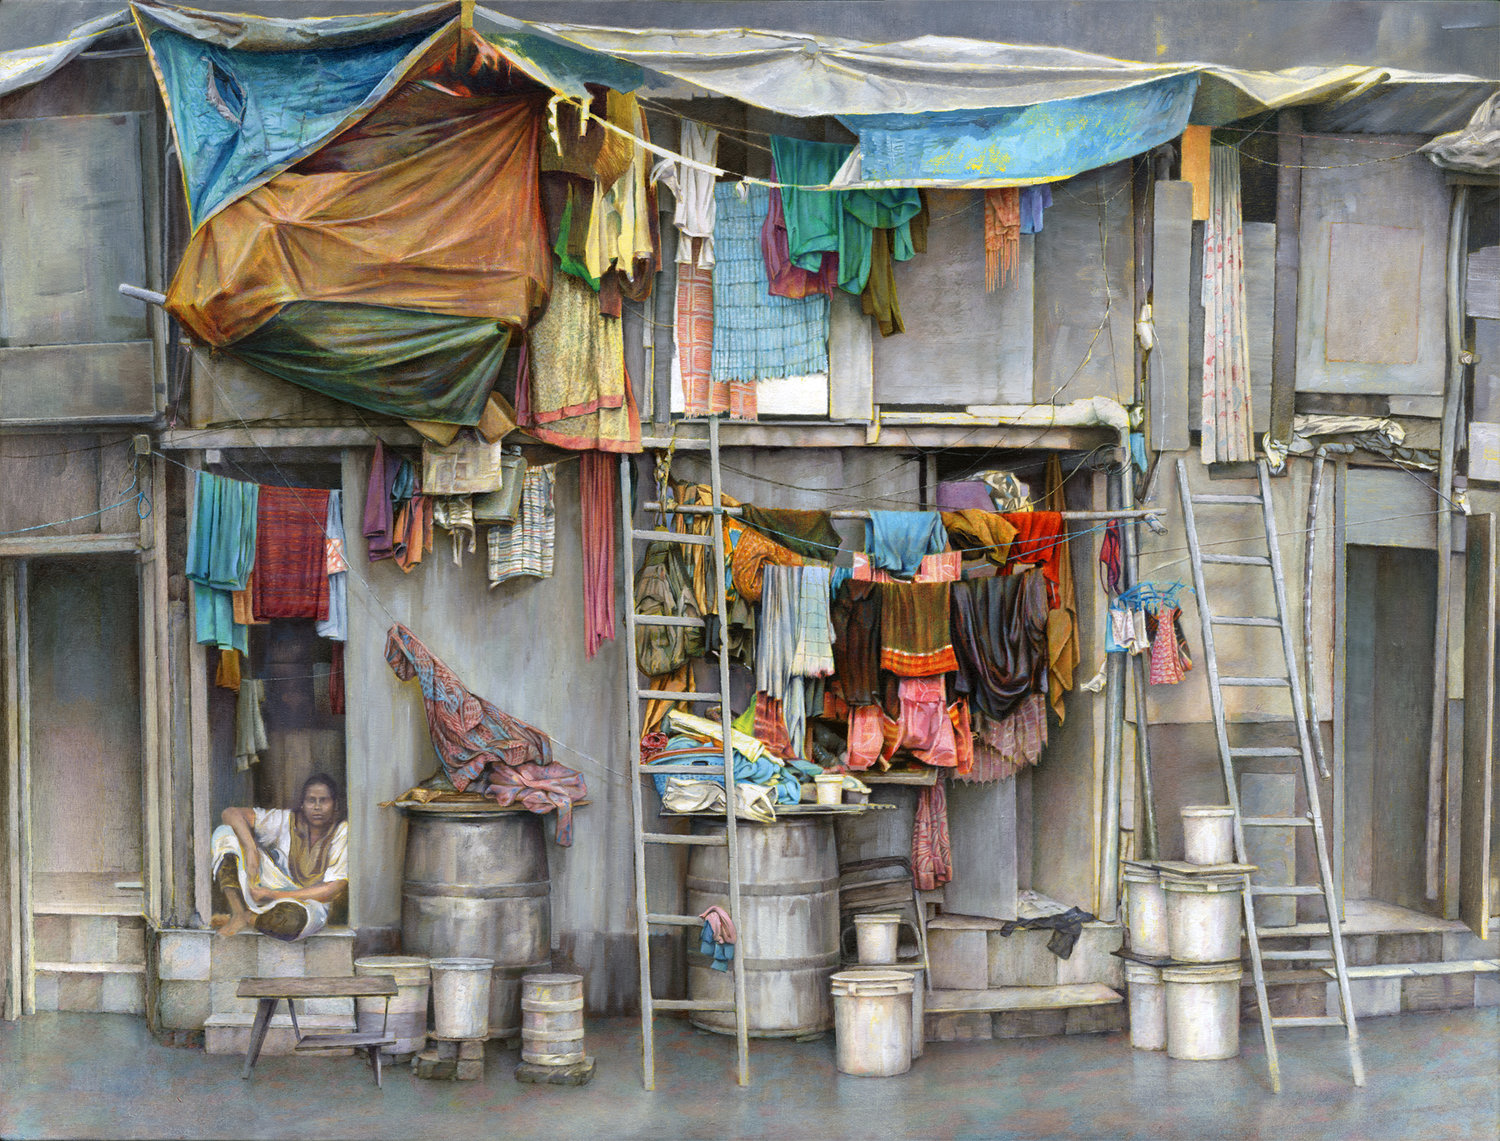 'Wadibunder Road', David Agenjo, Oil on canvas, 90 x 120 x 3 cm